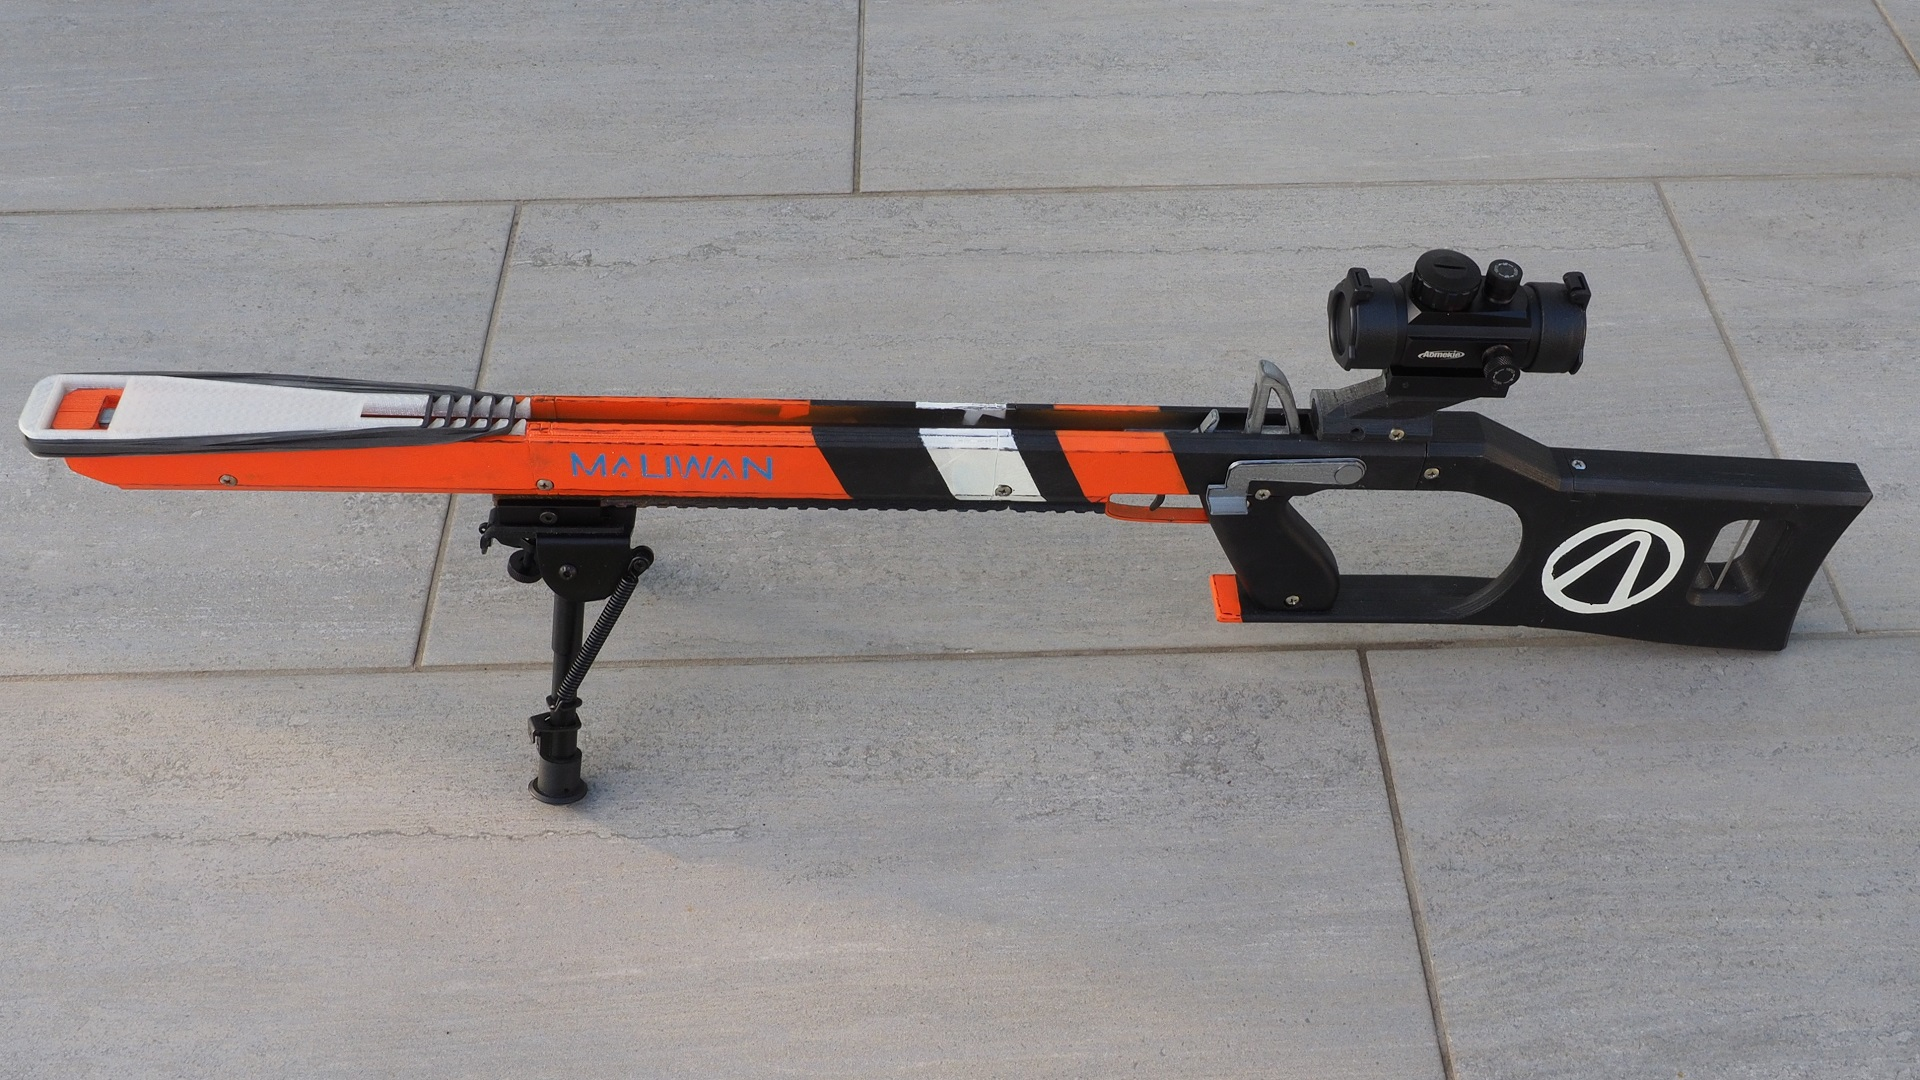 3D Printed Borderlands rifle is a repeating rubber band gun